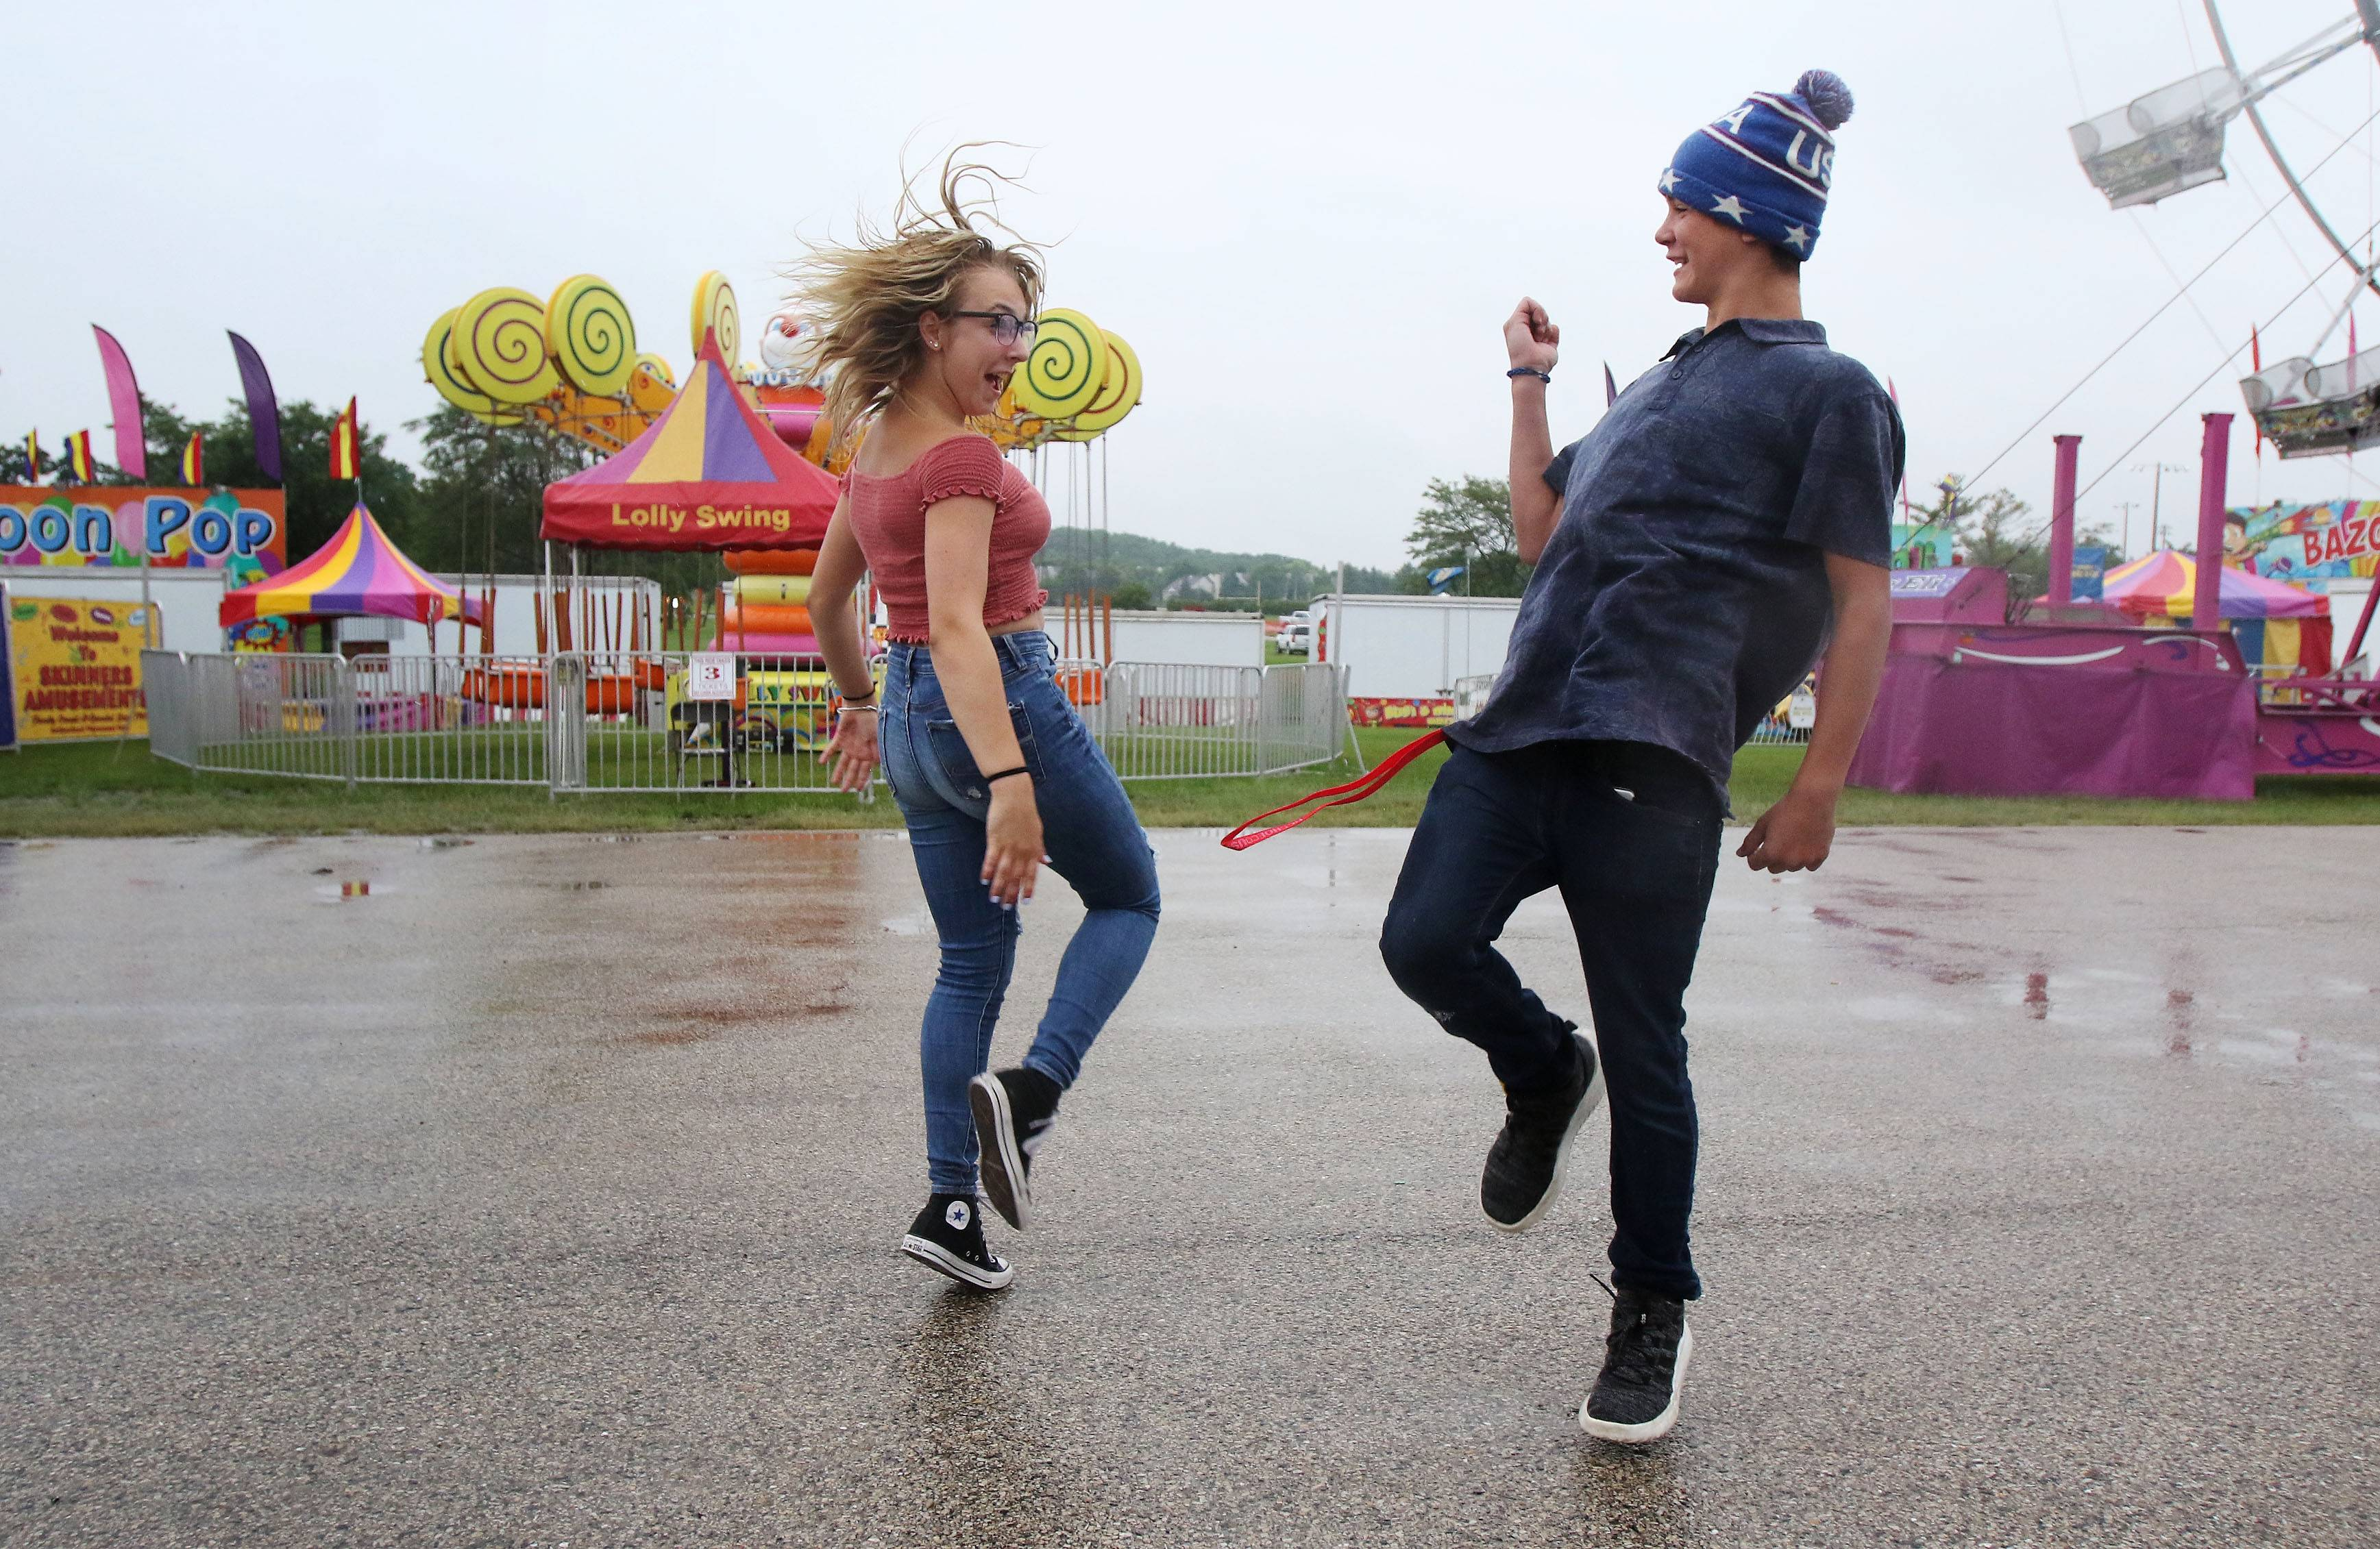 Thirteen-year-olds Nataleigh Miller and Charlie Spencer, of Wauconda dance in the rain during the first day of the Wauconda Fest at Cook Park on Thursday. Steady rain throughout the day affected attendance with carnival rides closed for the day.